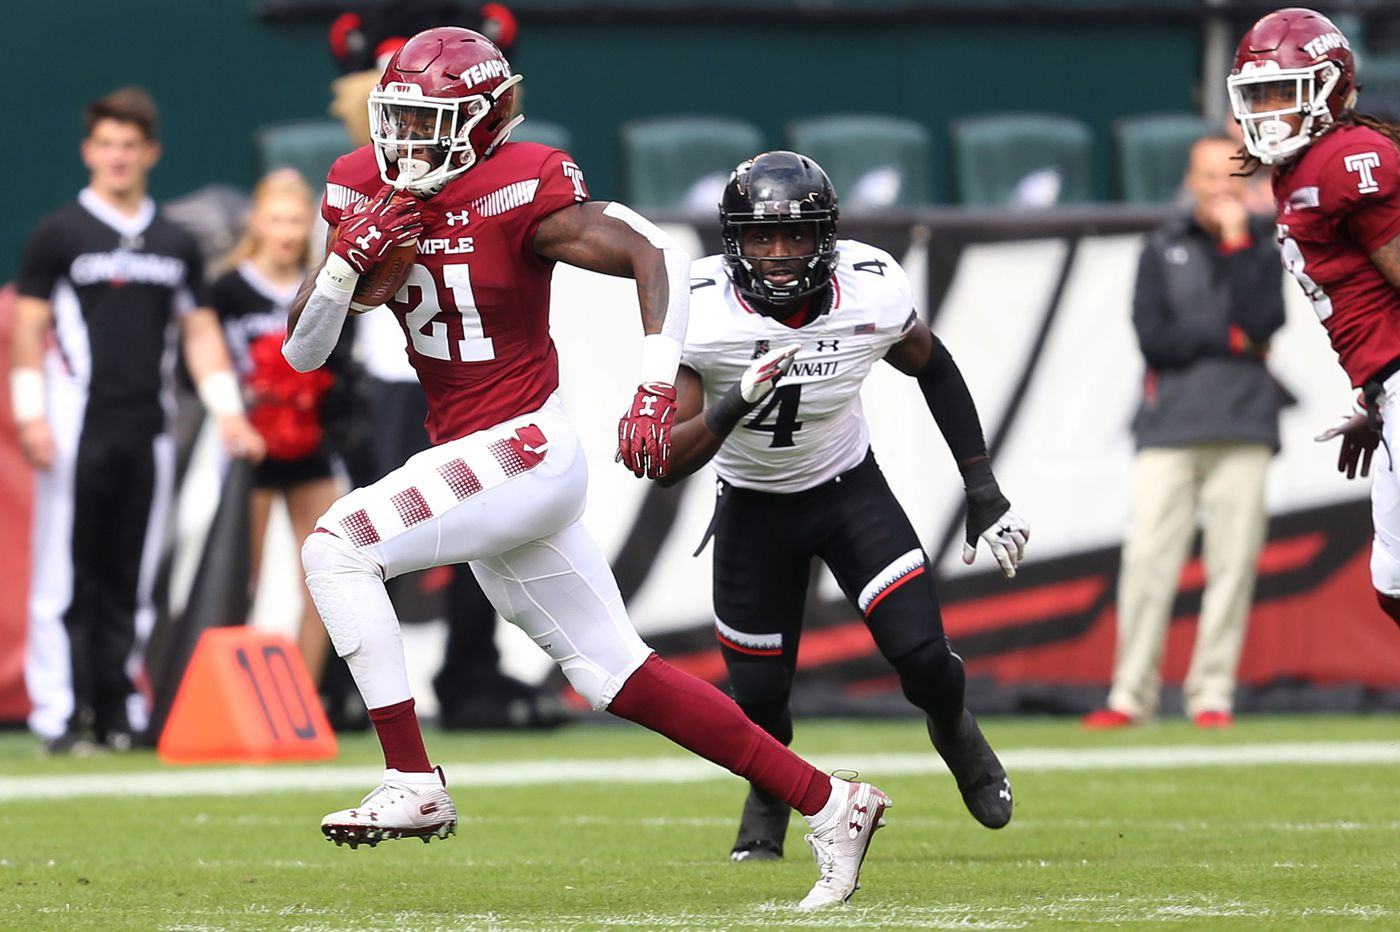 Jager Gardner and Kyle Dobbins are early front-runners in Temple's running back race